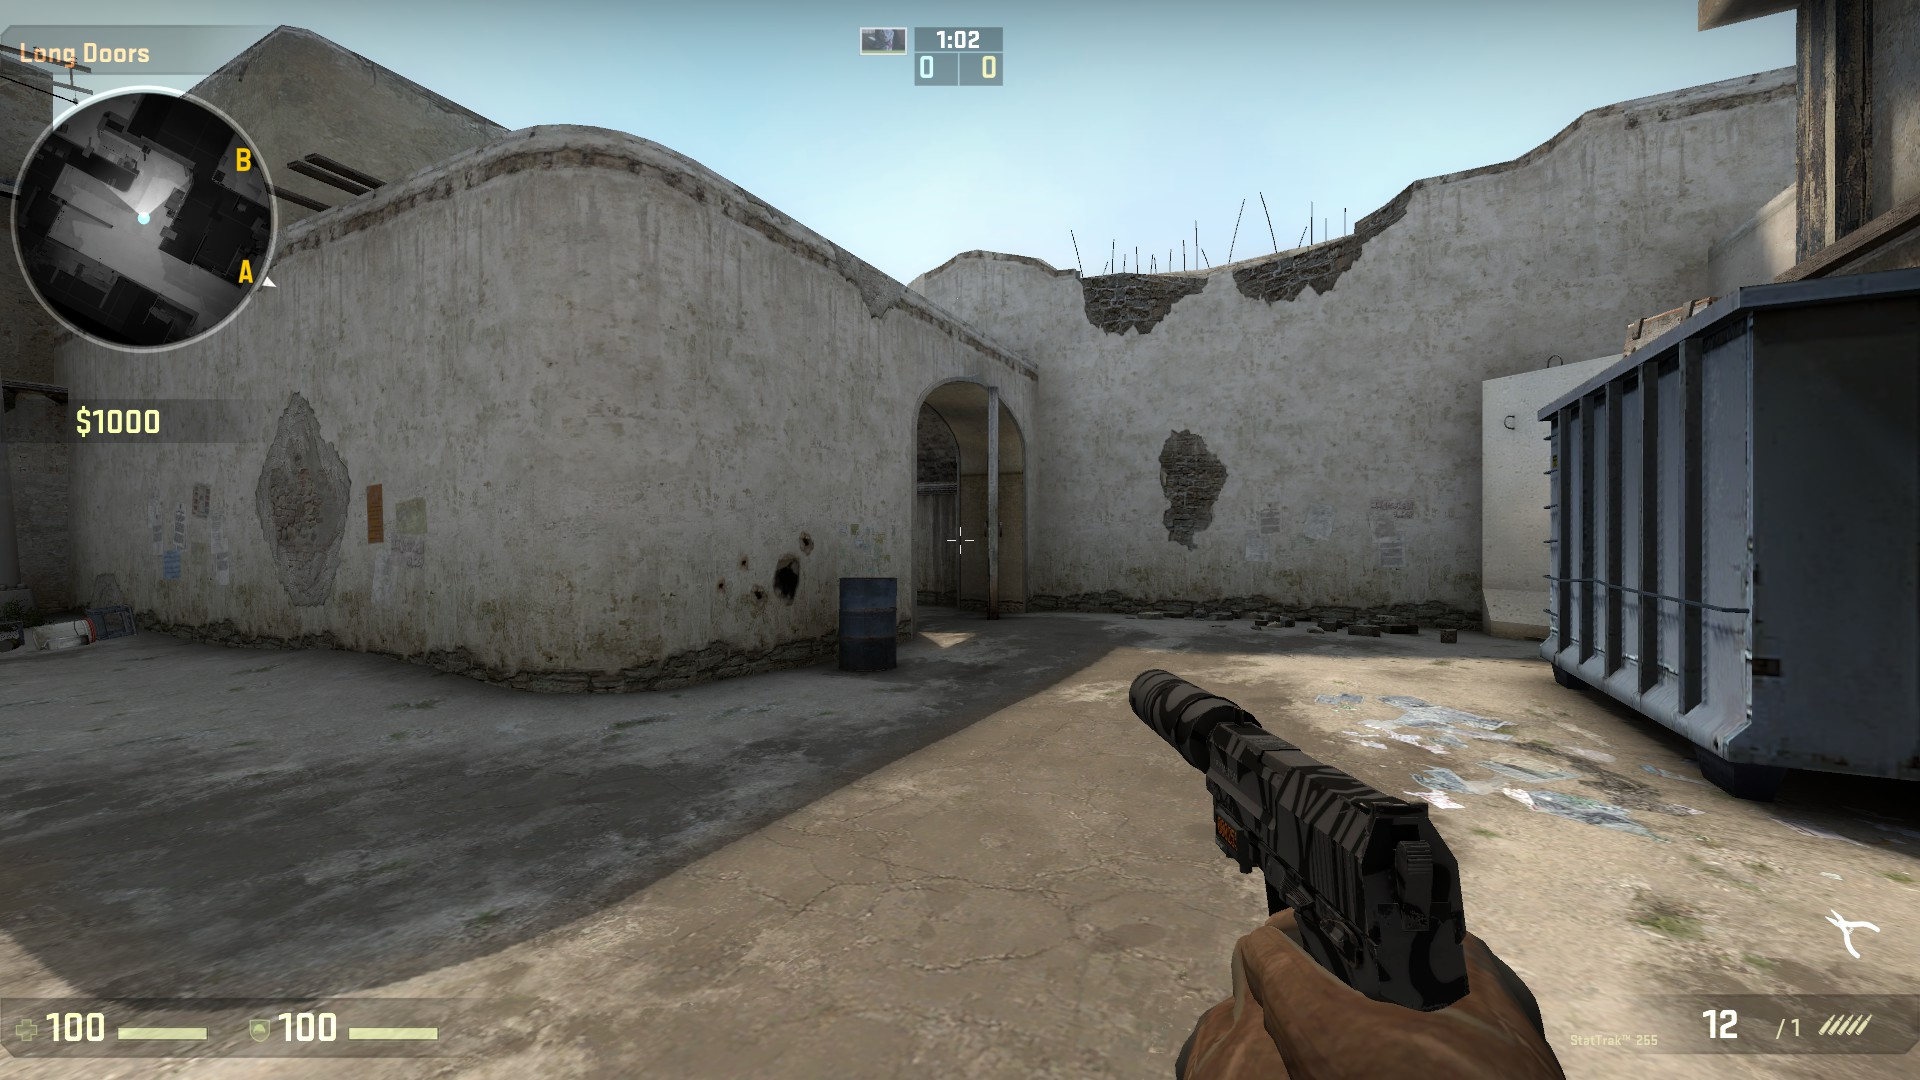 Steam Community :: Guide :: My View model position for CS:GO